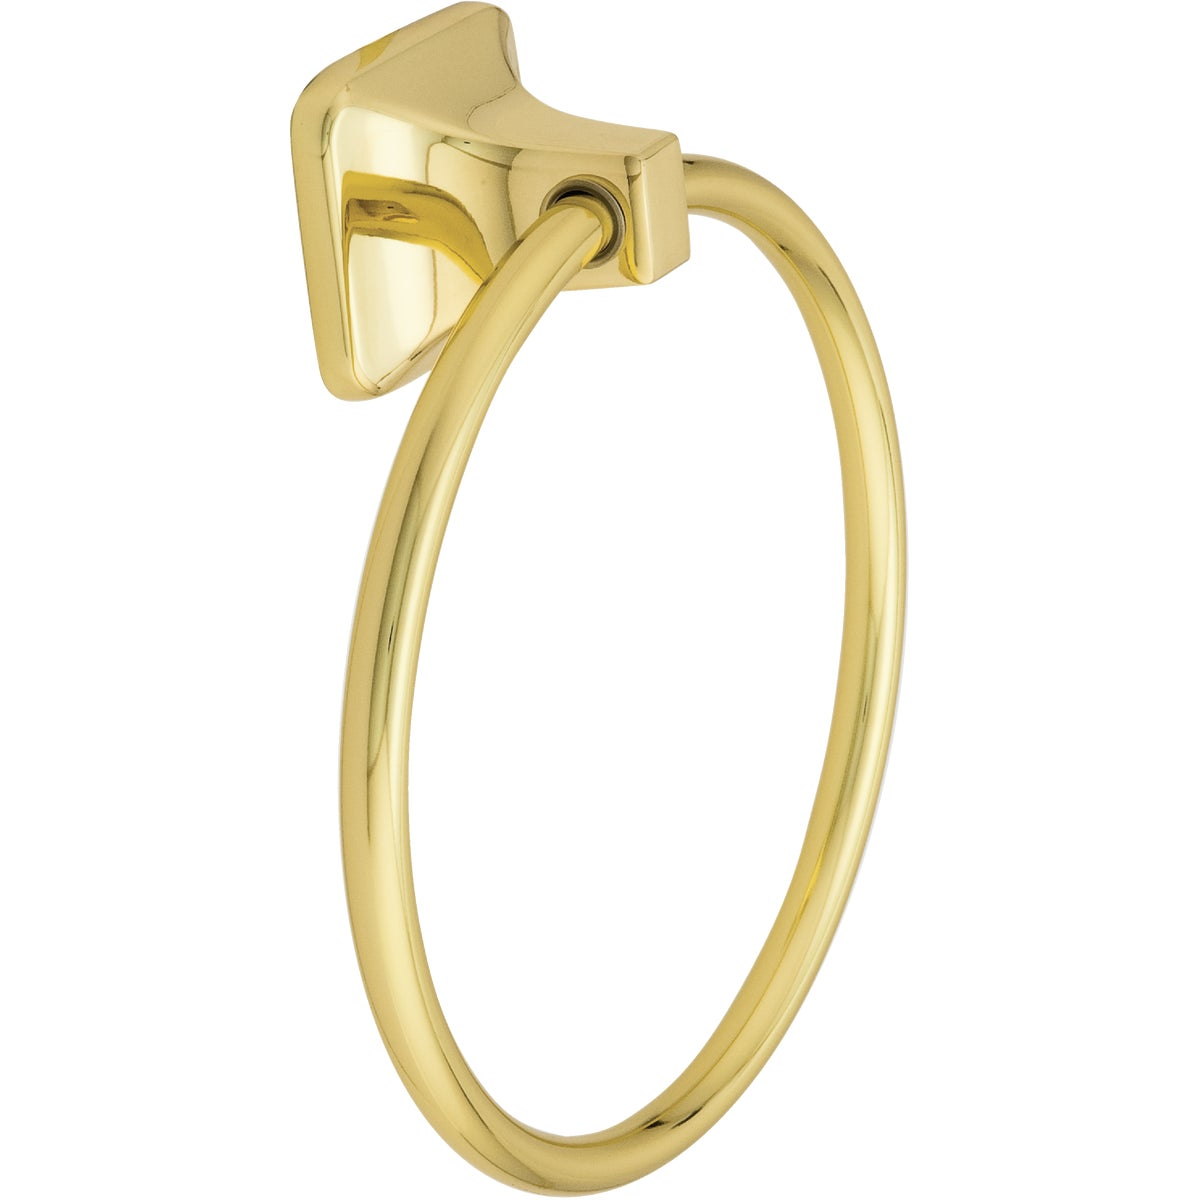 PB TOWEL RING